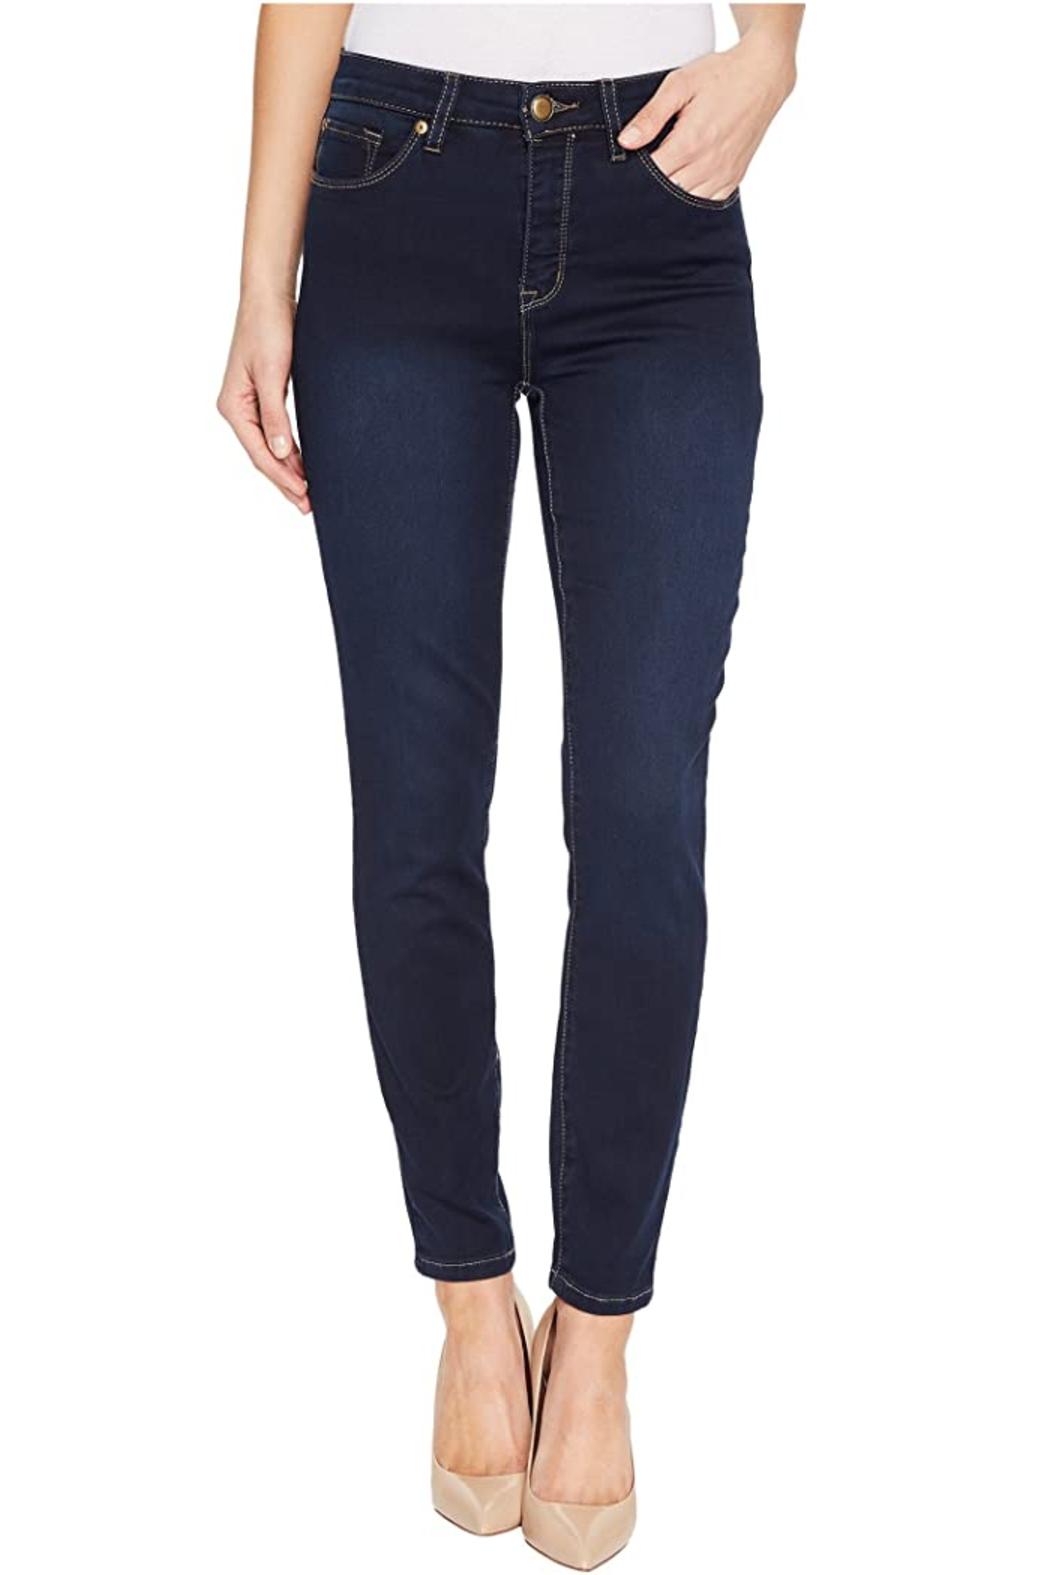 Tribal Jeans Dream Ankle Jean - Main Image